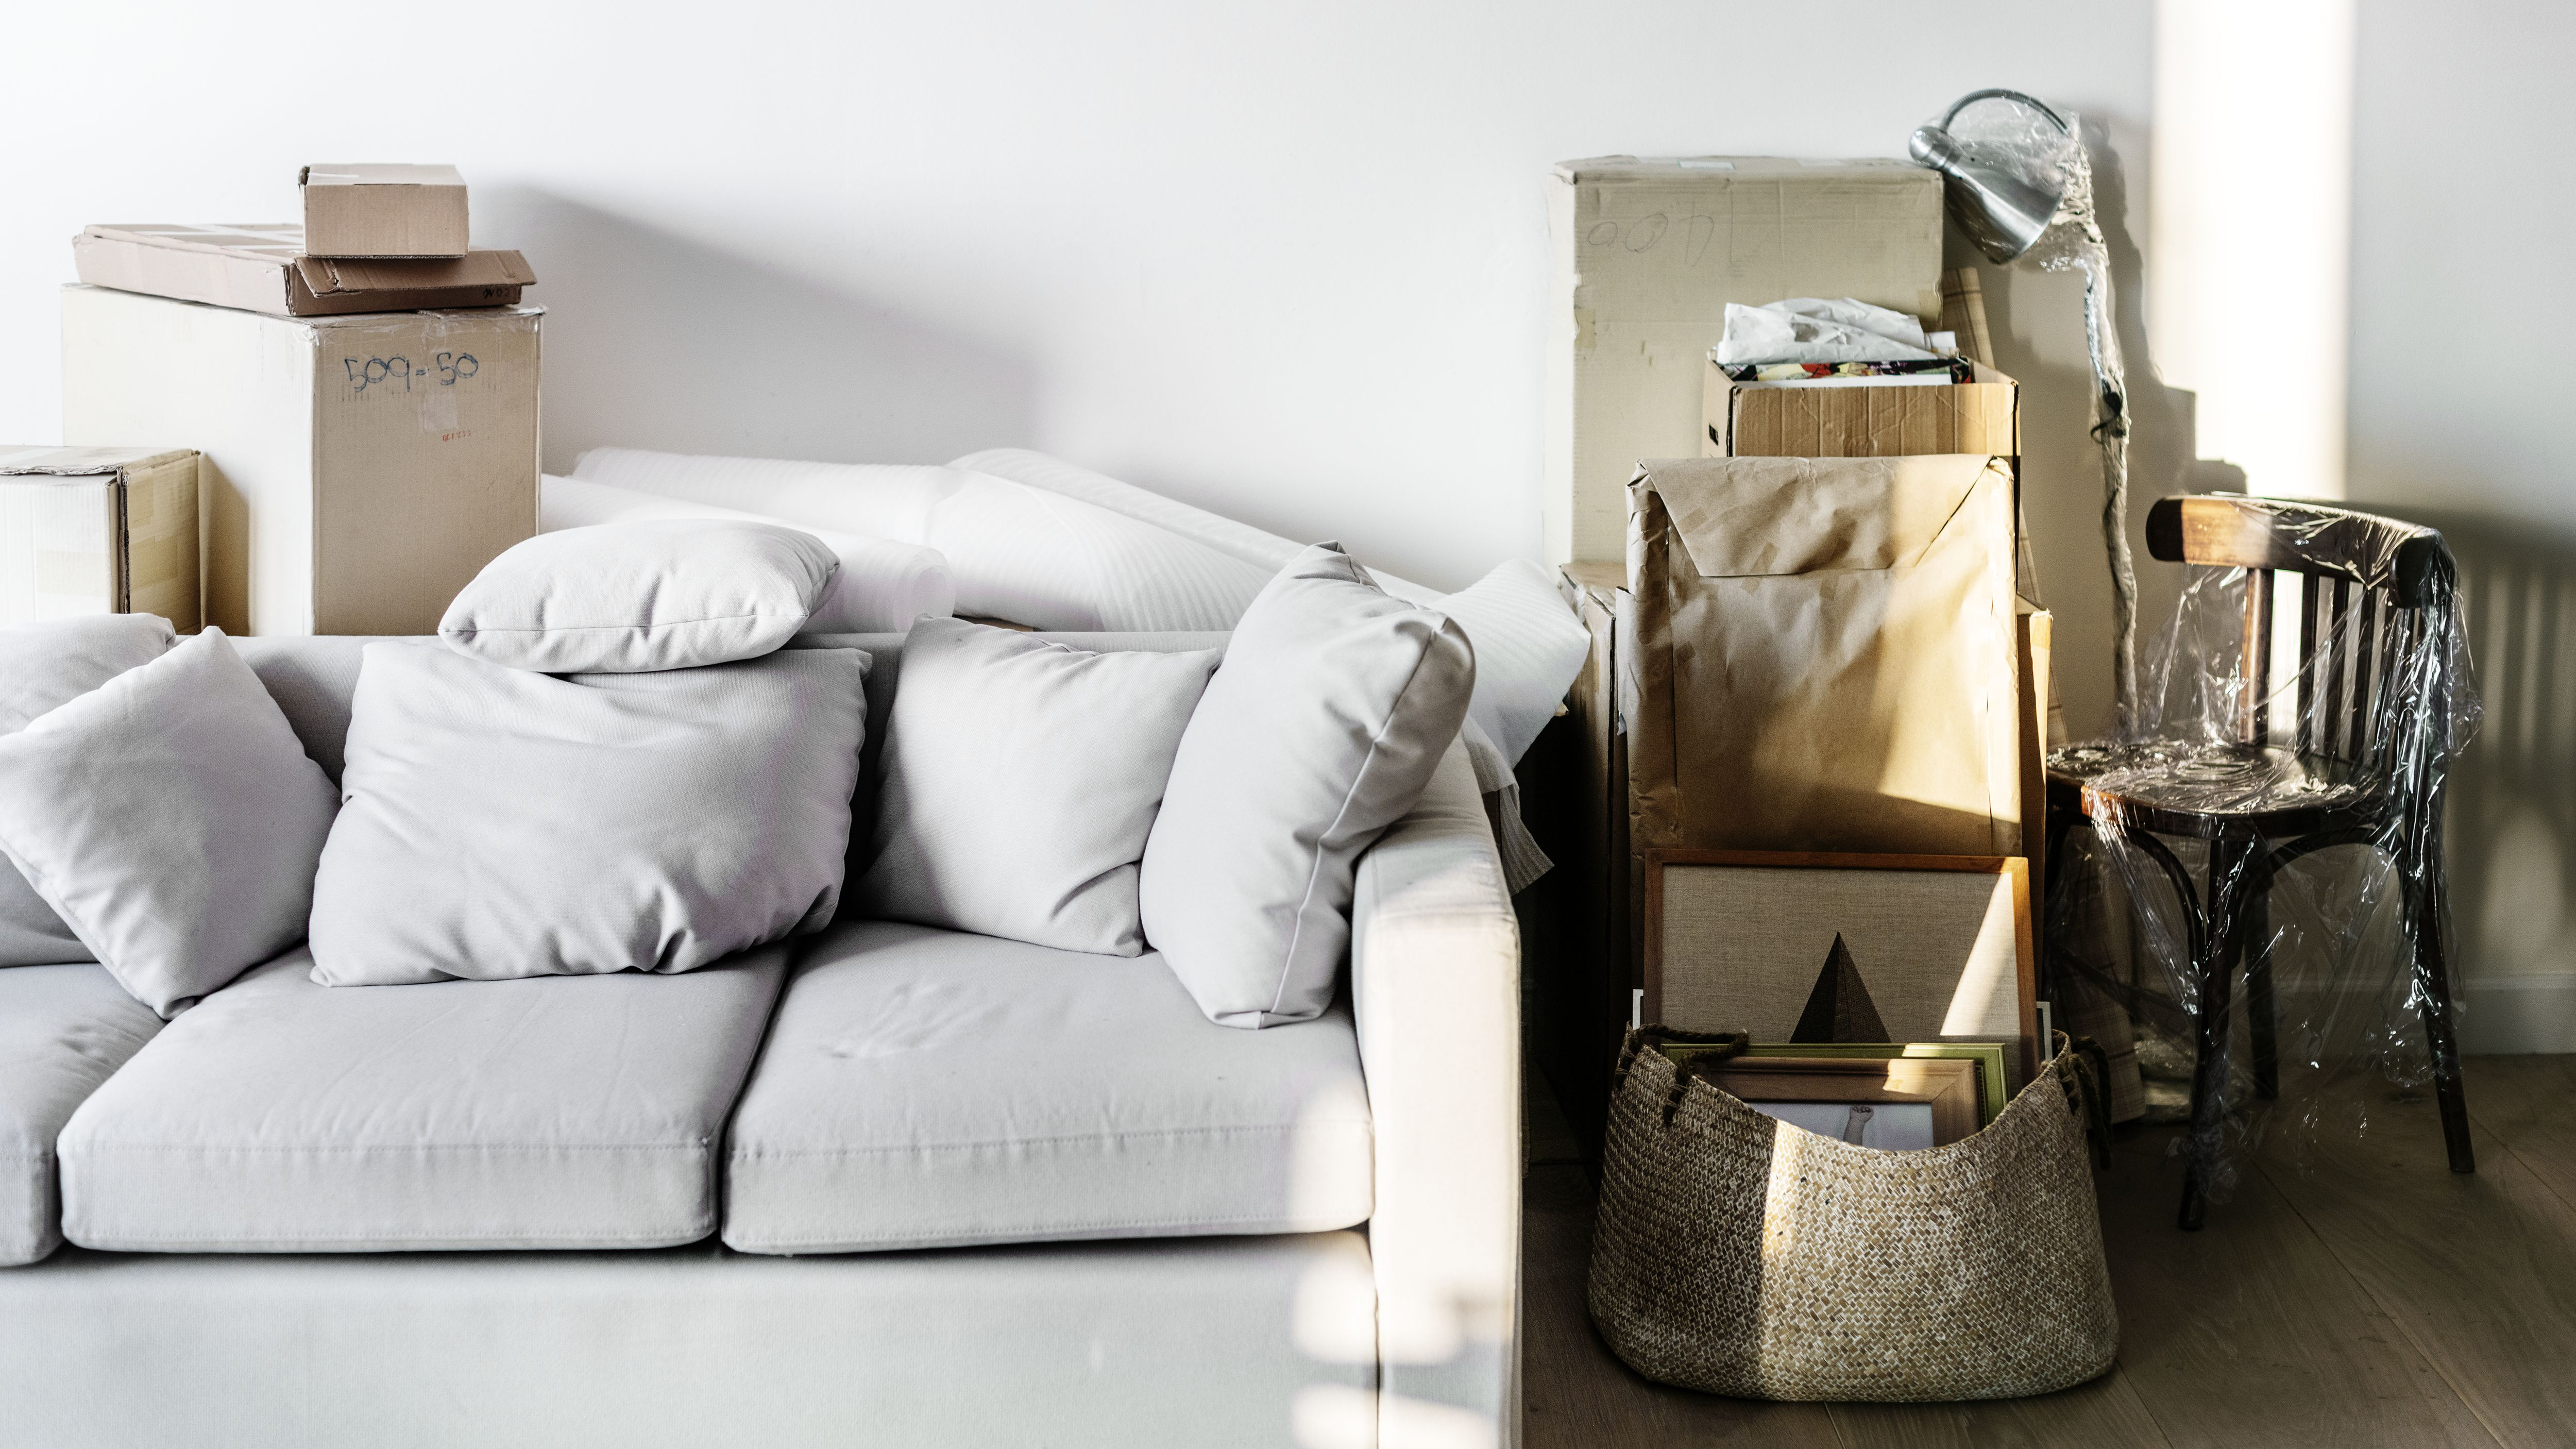 How to Prepare Furniture When Moving